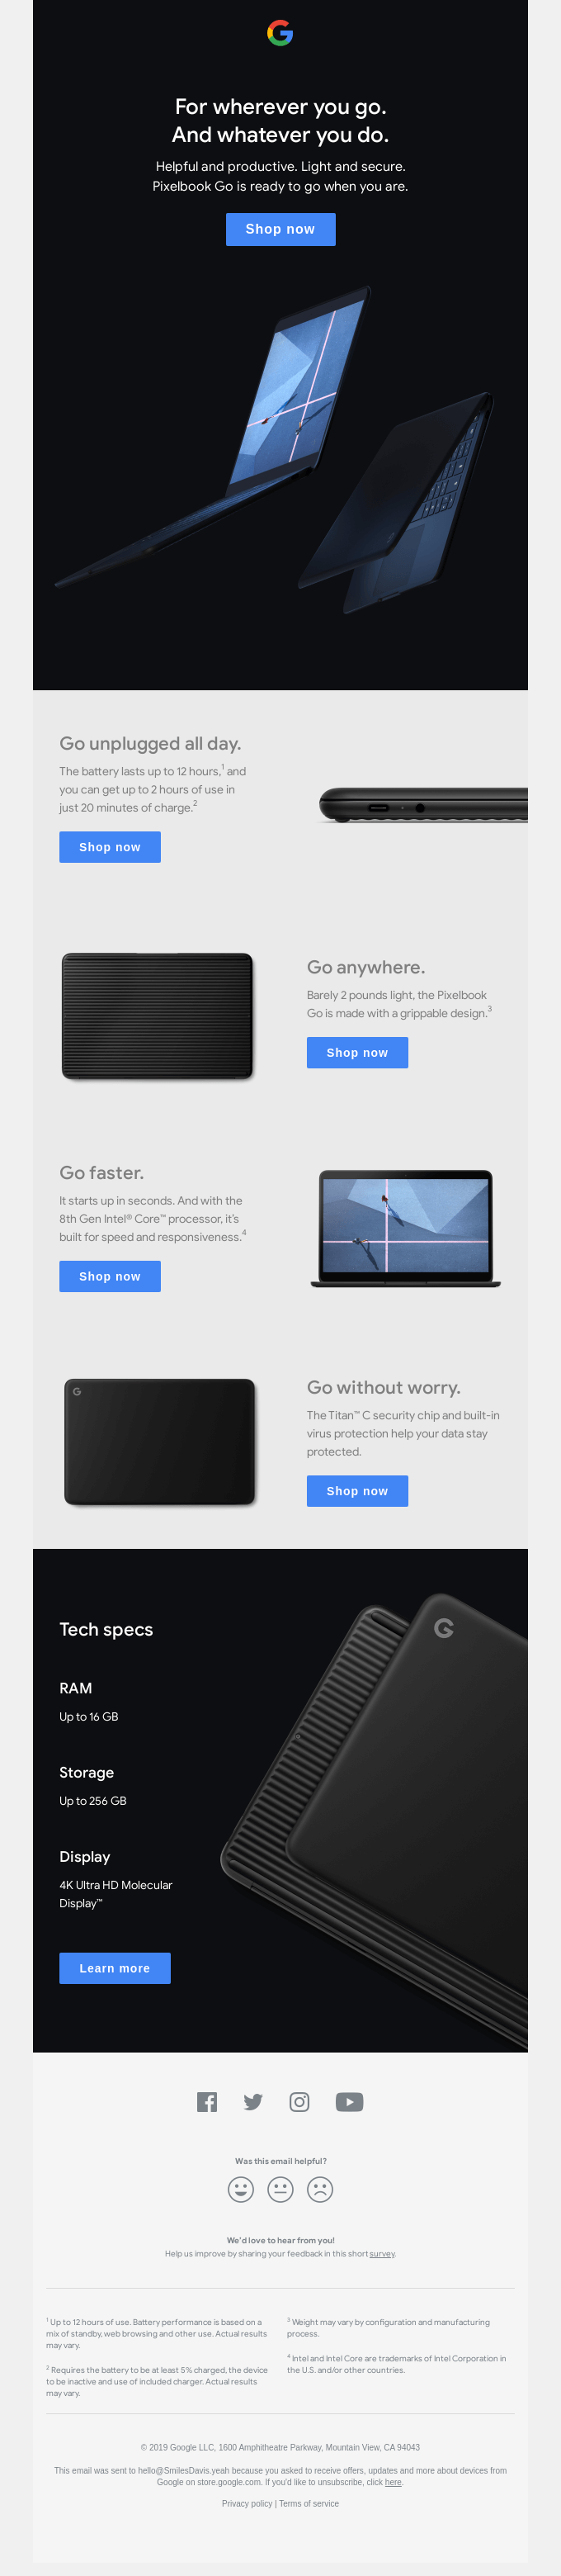 Introducing the new Pixelbook Go